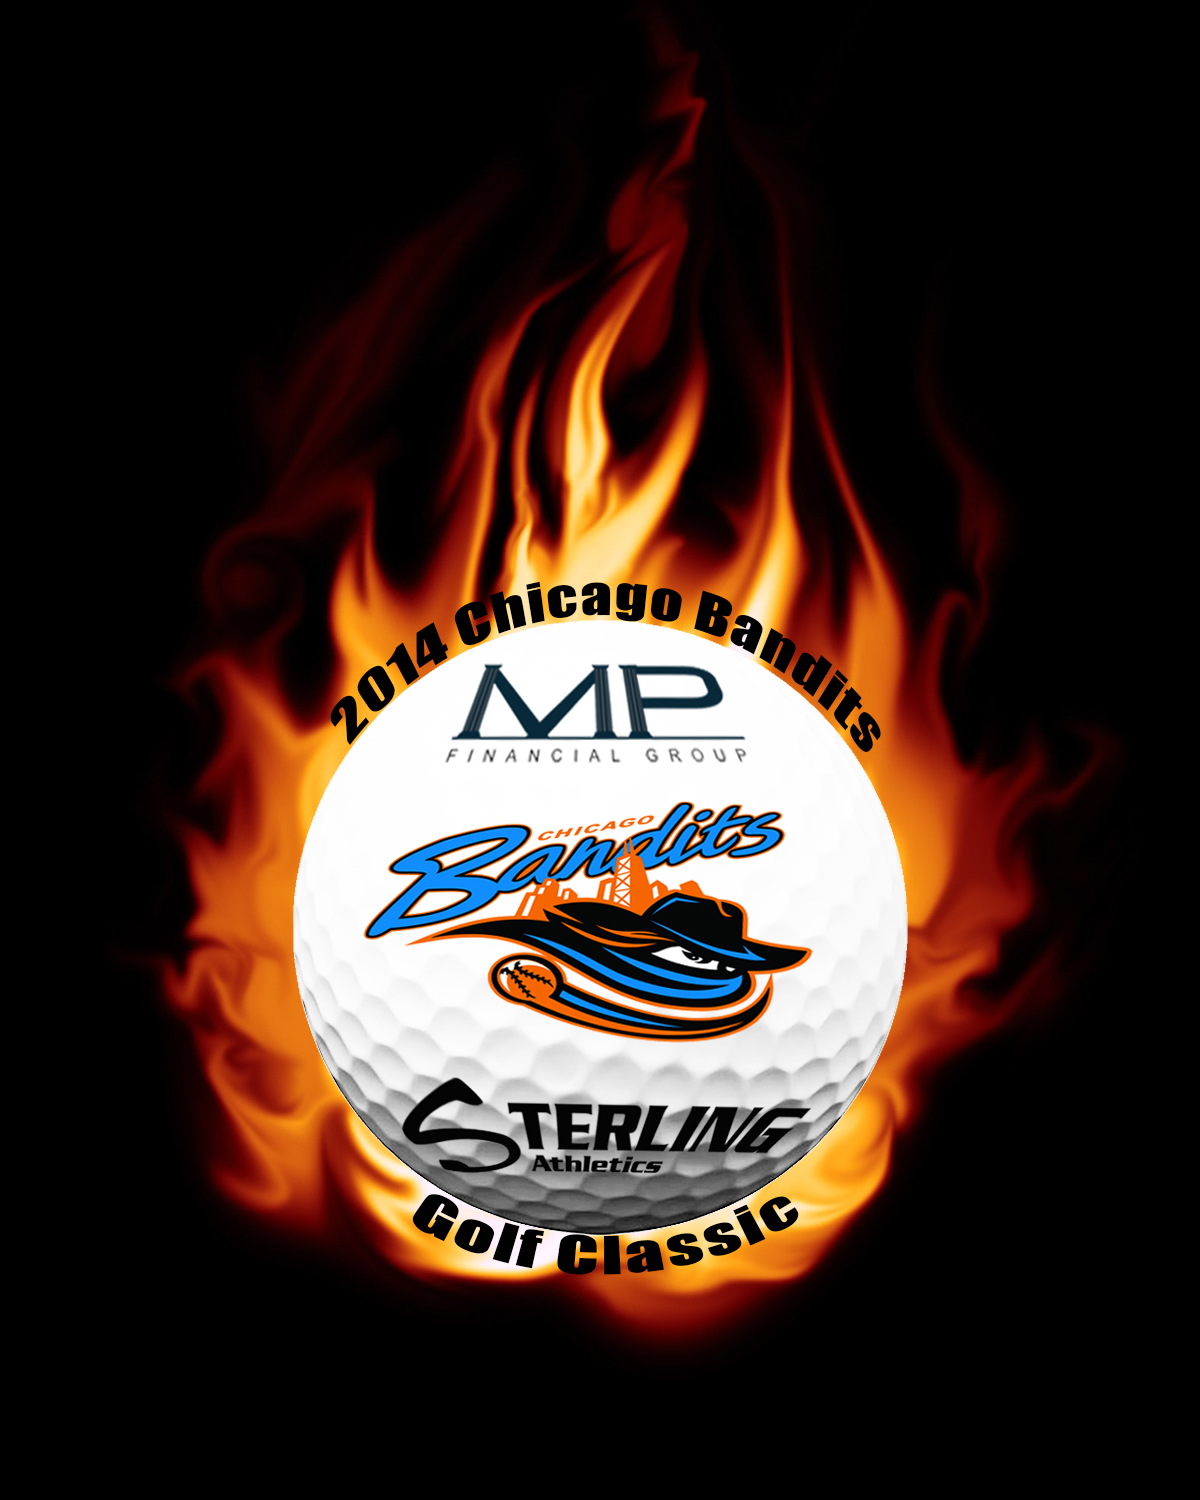 2014 Golf Outing Logo.jpg